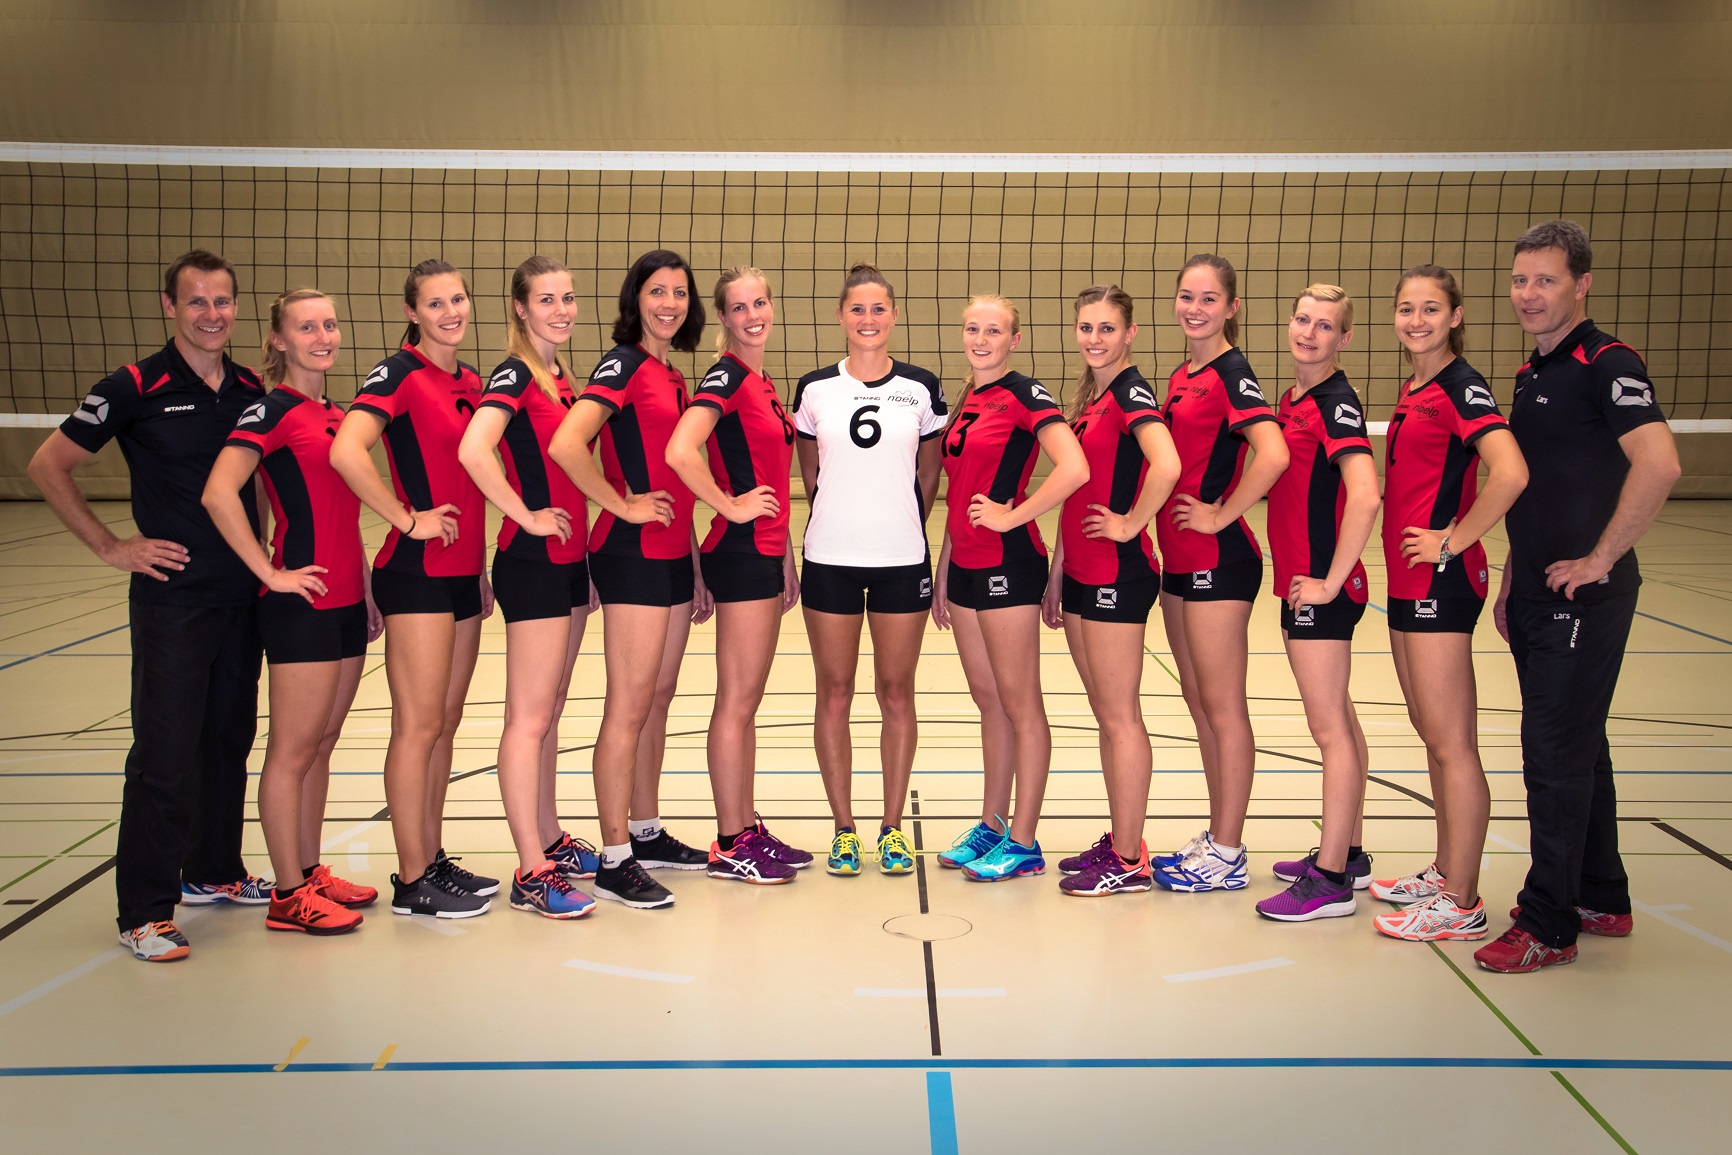 volleyball 3 liga damen